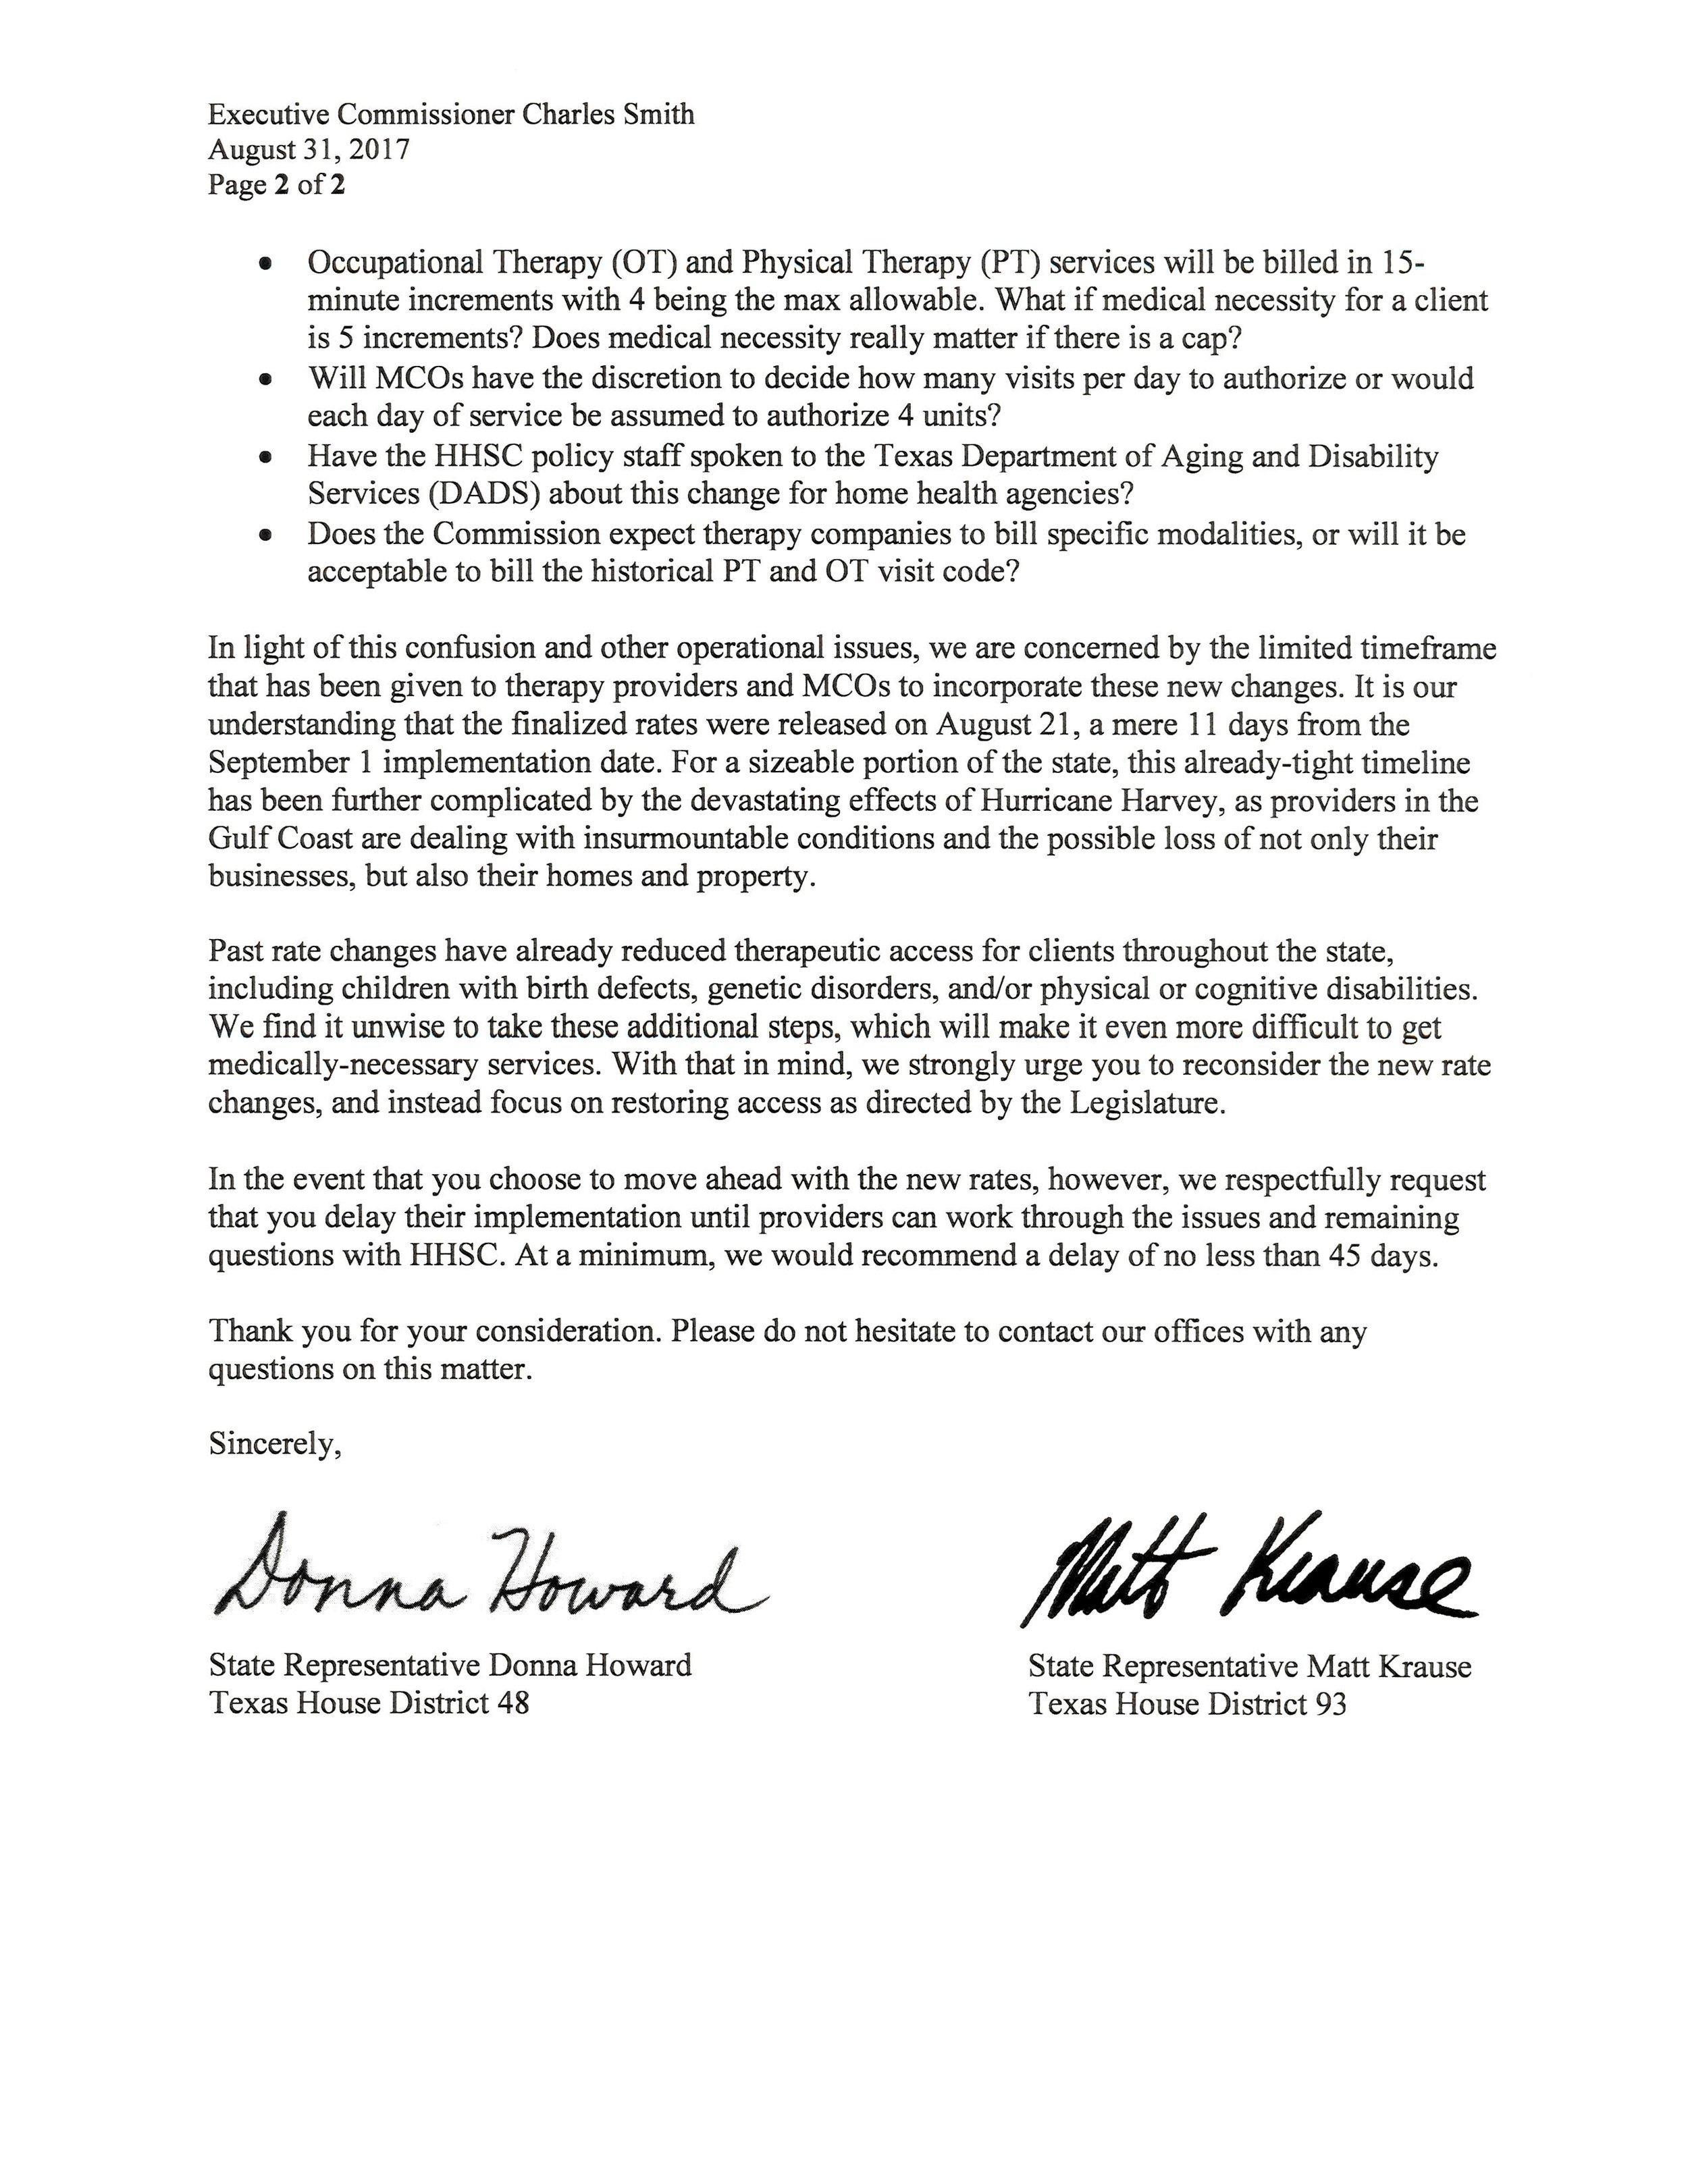 Howard-Krause_Letter to HHSC EC Smith_Acute Therapy_08.31.2017_Page_2.jpg